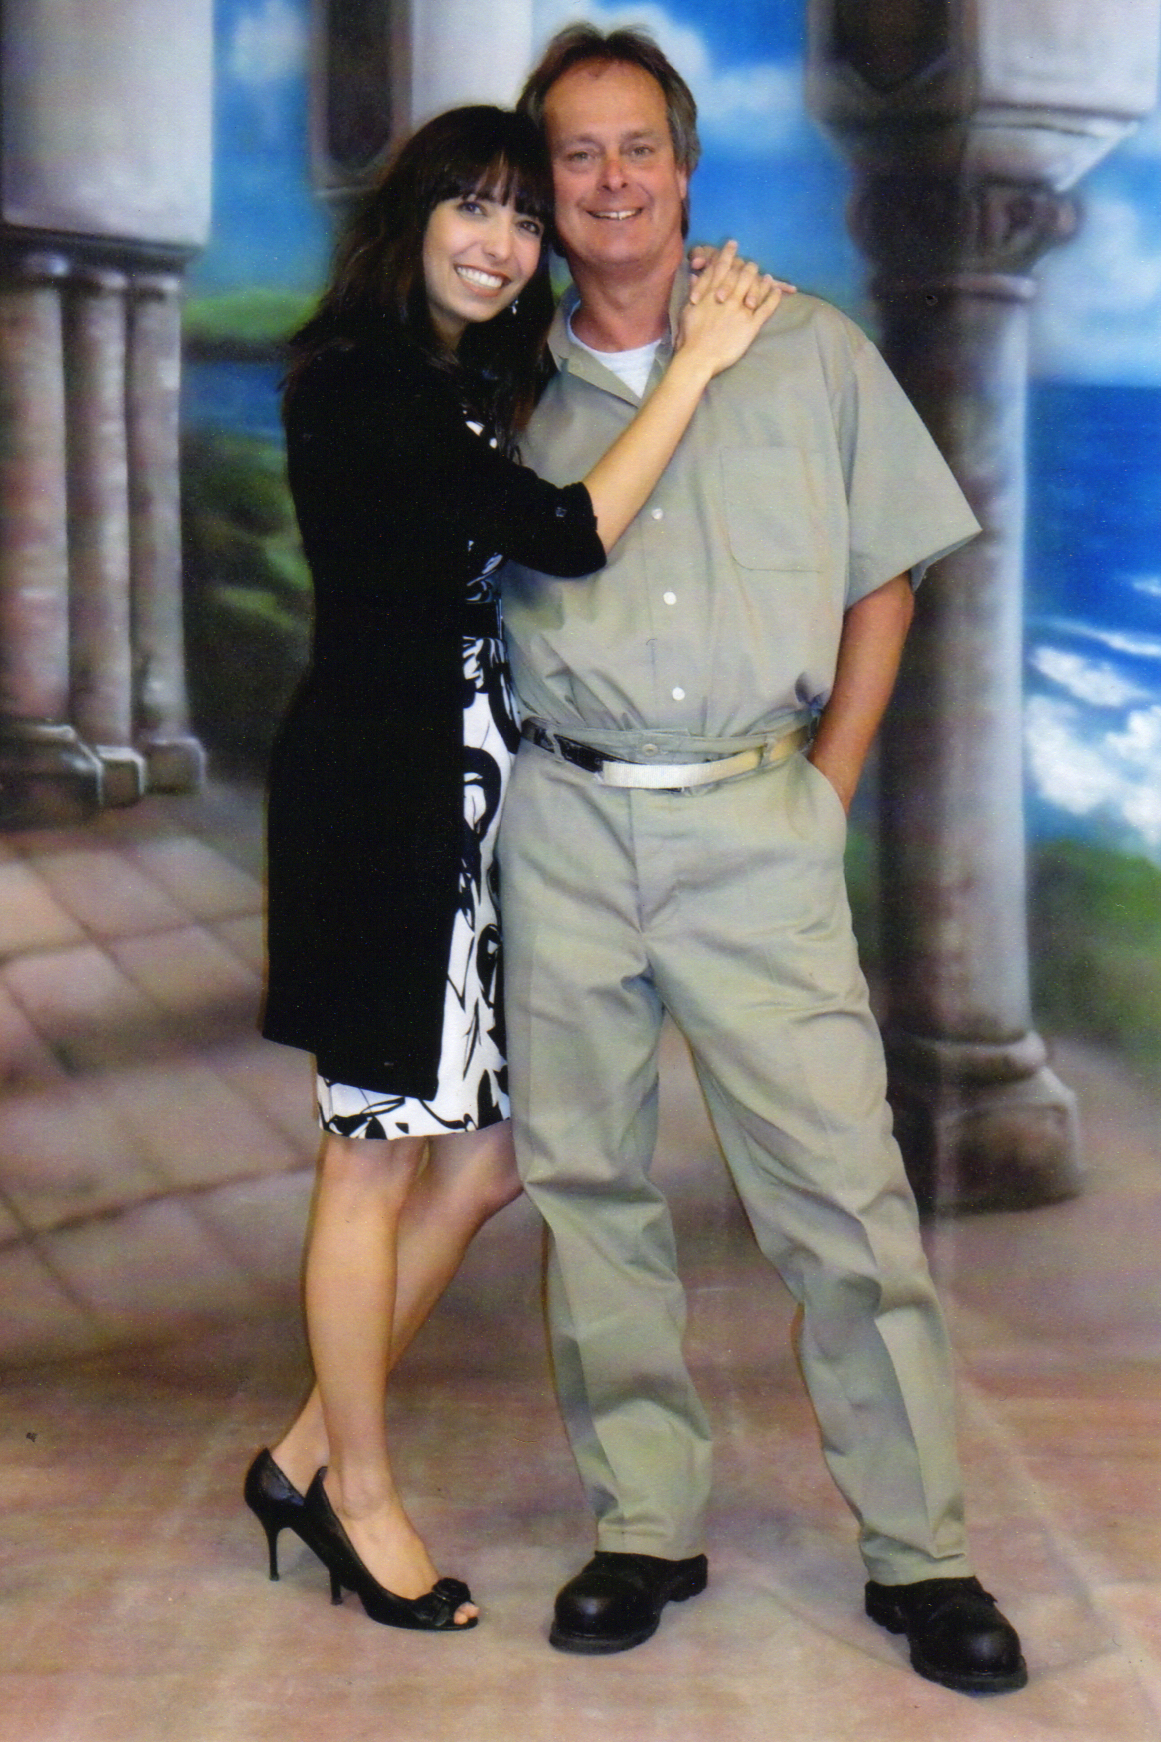 Jodie and Marc in Yazoo prison, June 23rd 2012